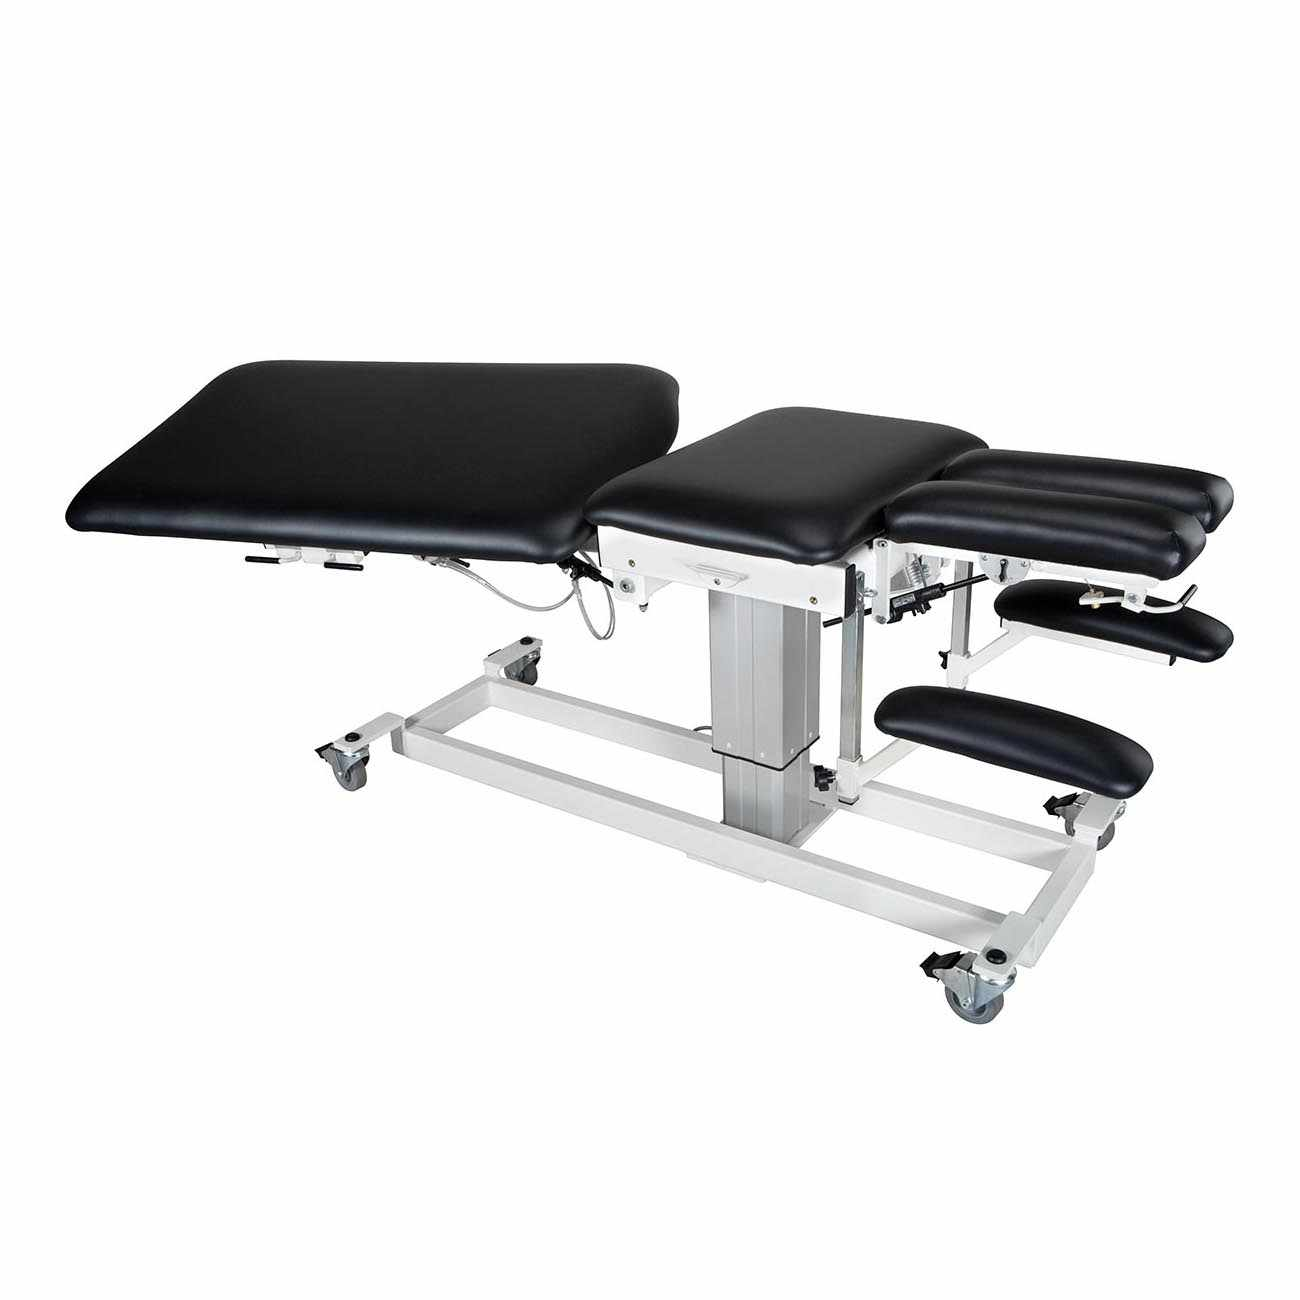 Armedica AM-SP 575 mobilization table